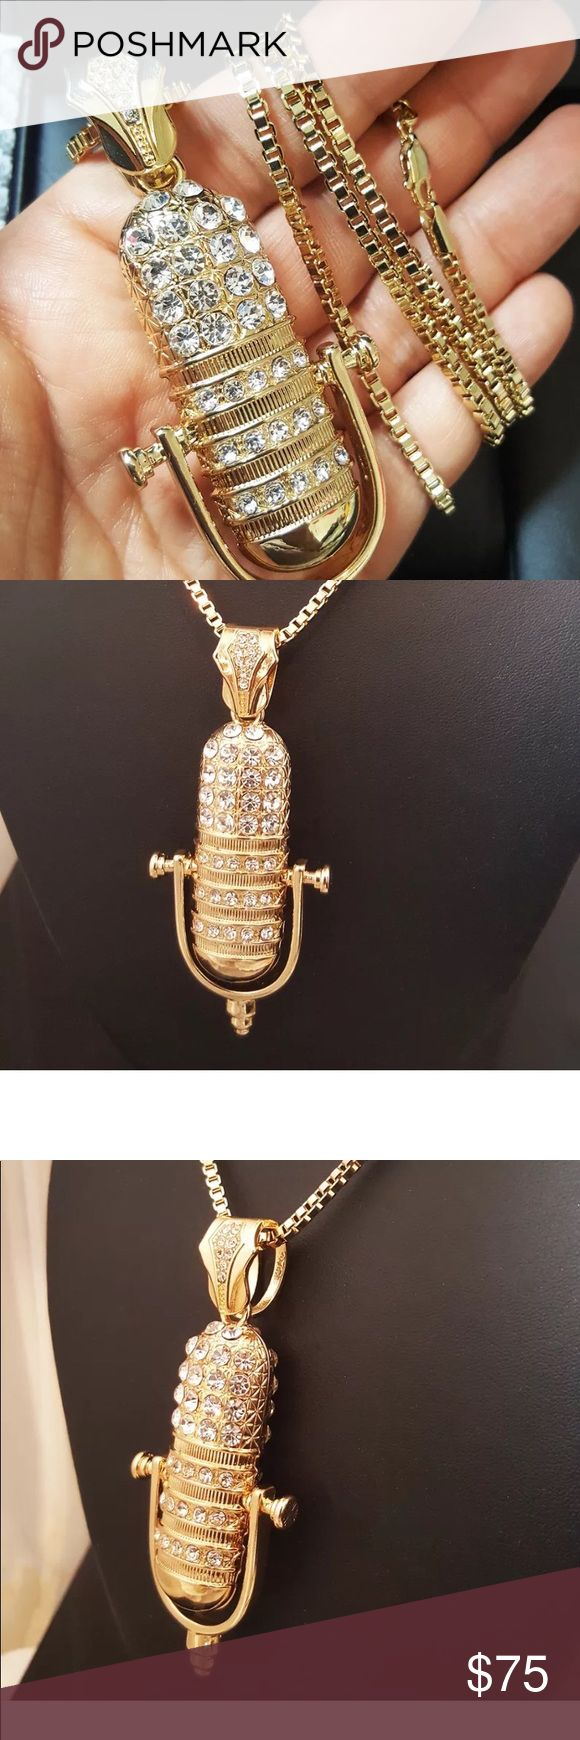 """New Gold Iced Out Hip Hop Microphone Music Pendant Necklace :  Hip Hop Celebrity Style SIZE OF PENDANT:  1.5"""" x 3.5"""" CHAIN:  3mm 30"""" Box Chain  14K Gold plated    Retail Price : $199 Accessories Jewelry"""